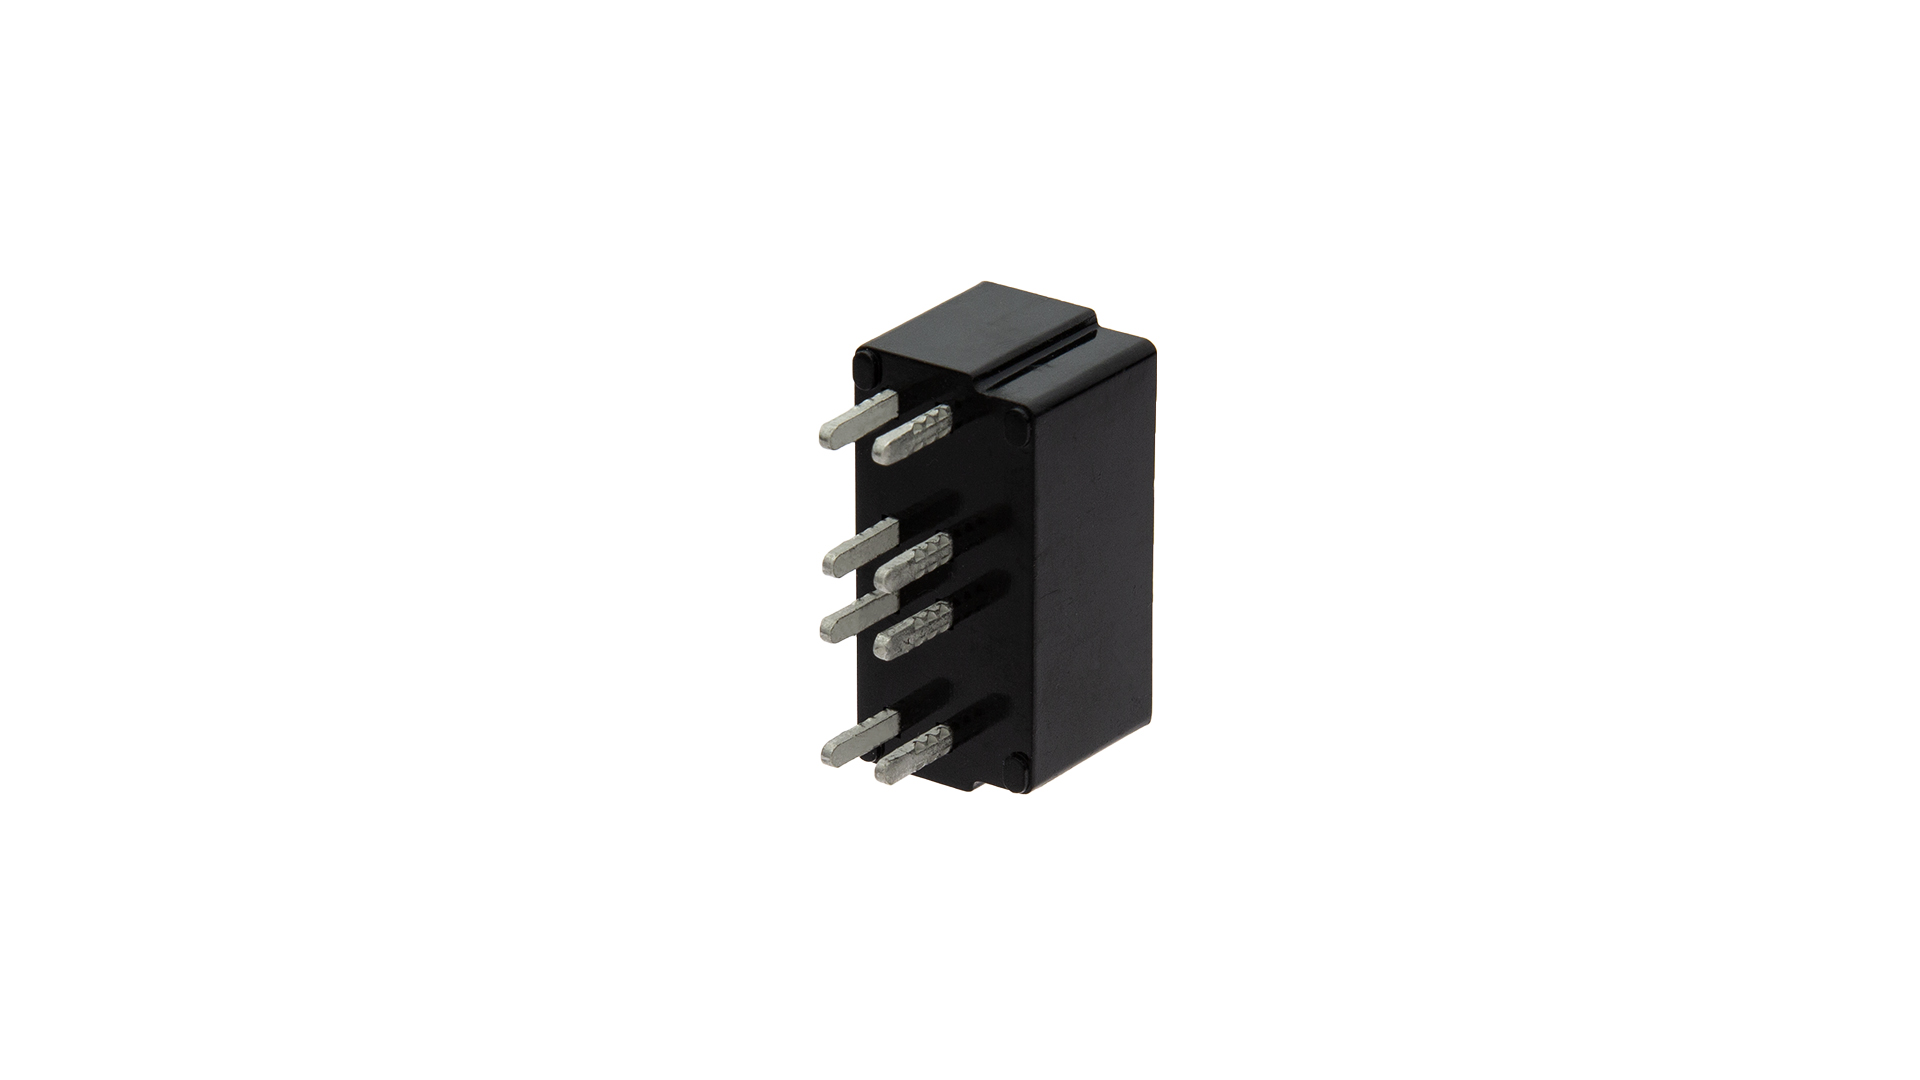 PP75 Accessories Guide Housings for Vertical Mini Powerclaw Contacts